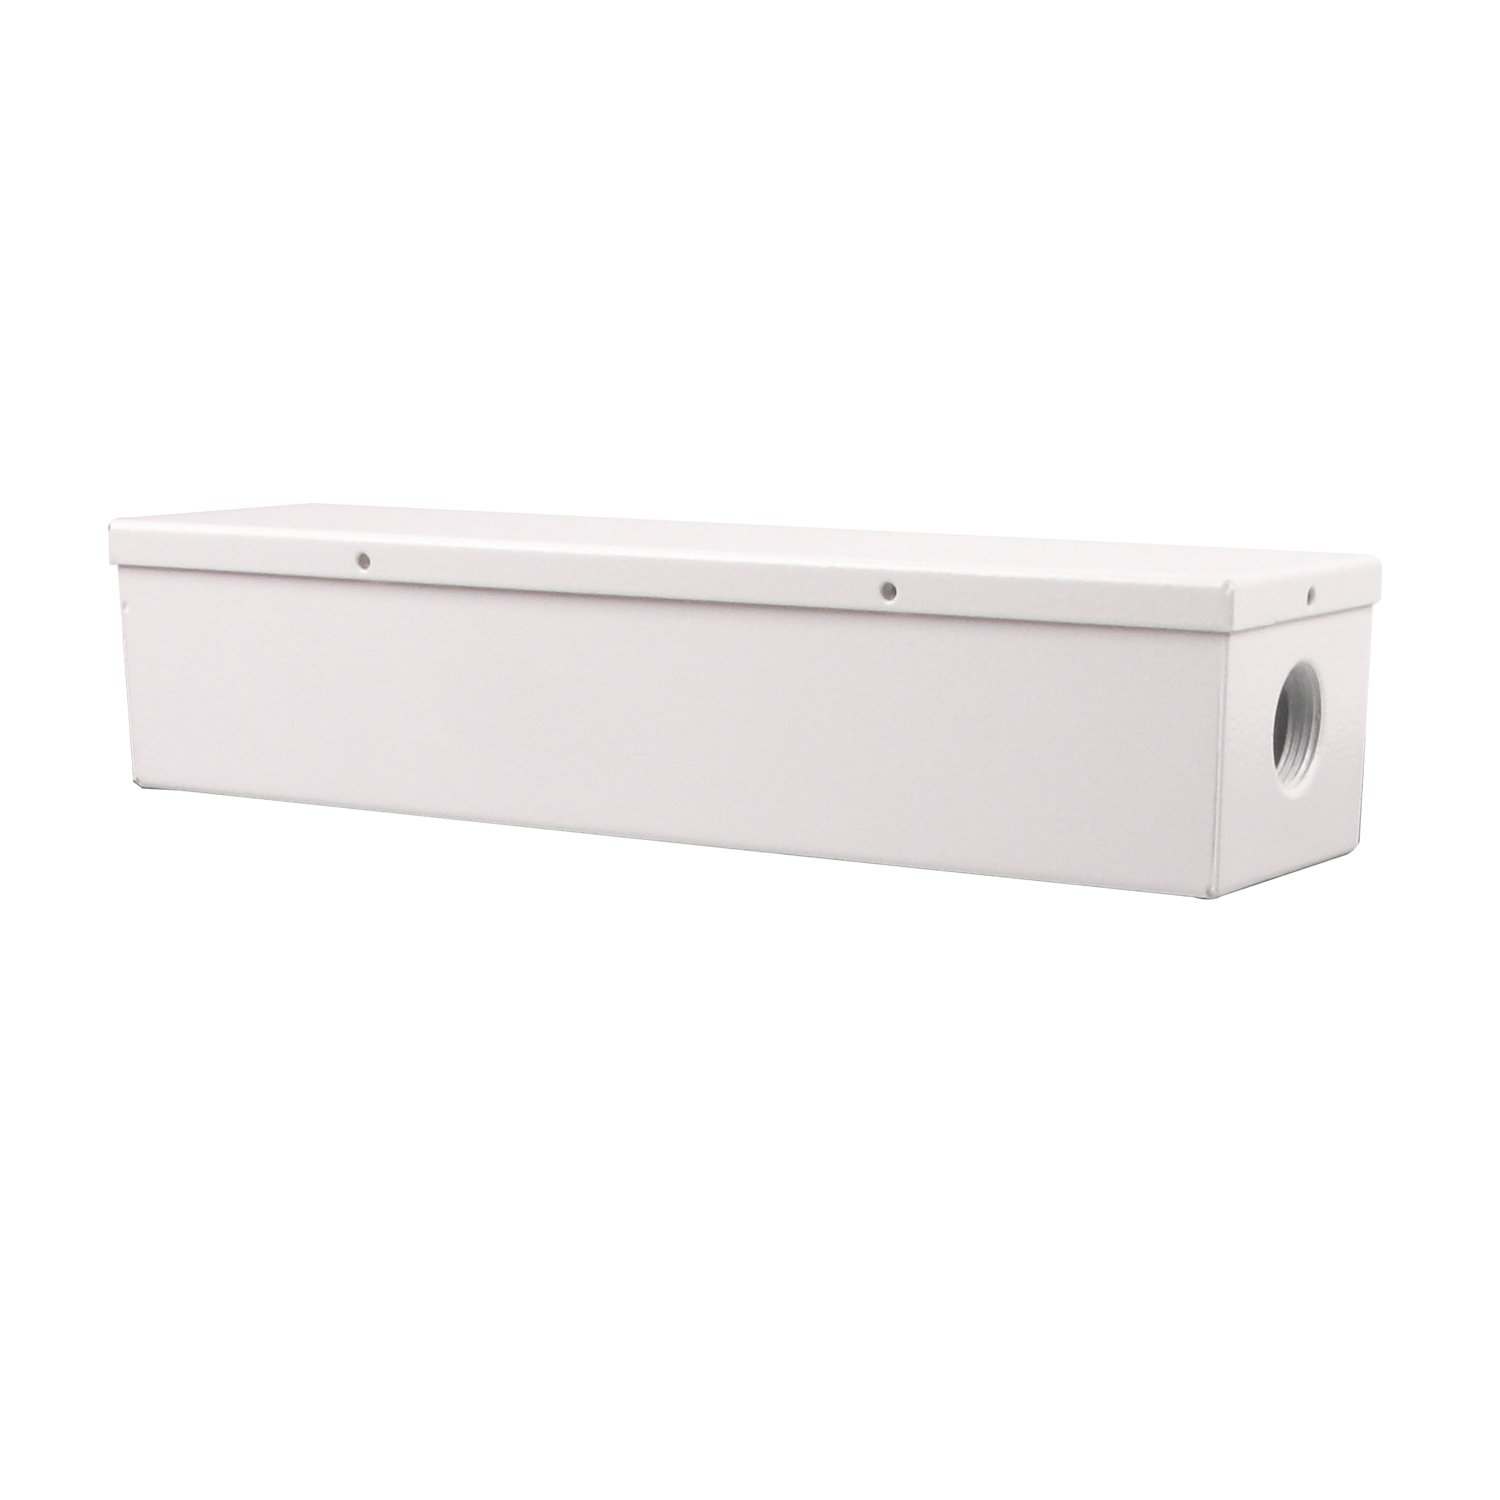 Hykolity Universal Junction Box Electrical Project Power Cable Connection Enclosure Waterproof Weatherproof 298x78x64mm